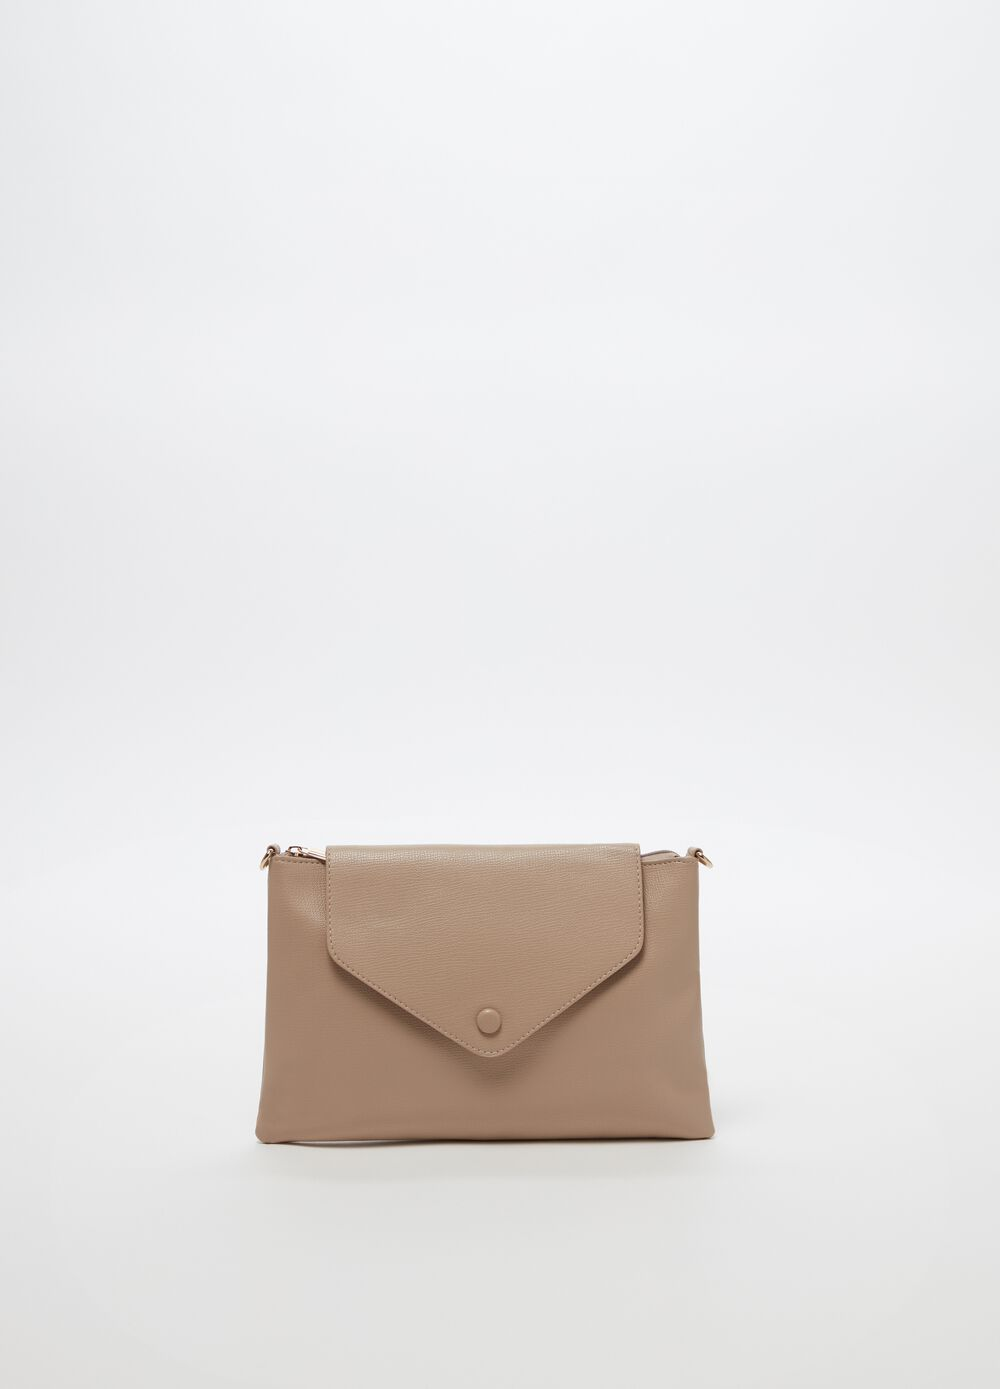 Clutch bag with shoulder strap, flap and zip